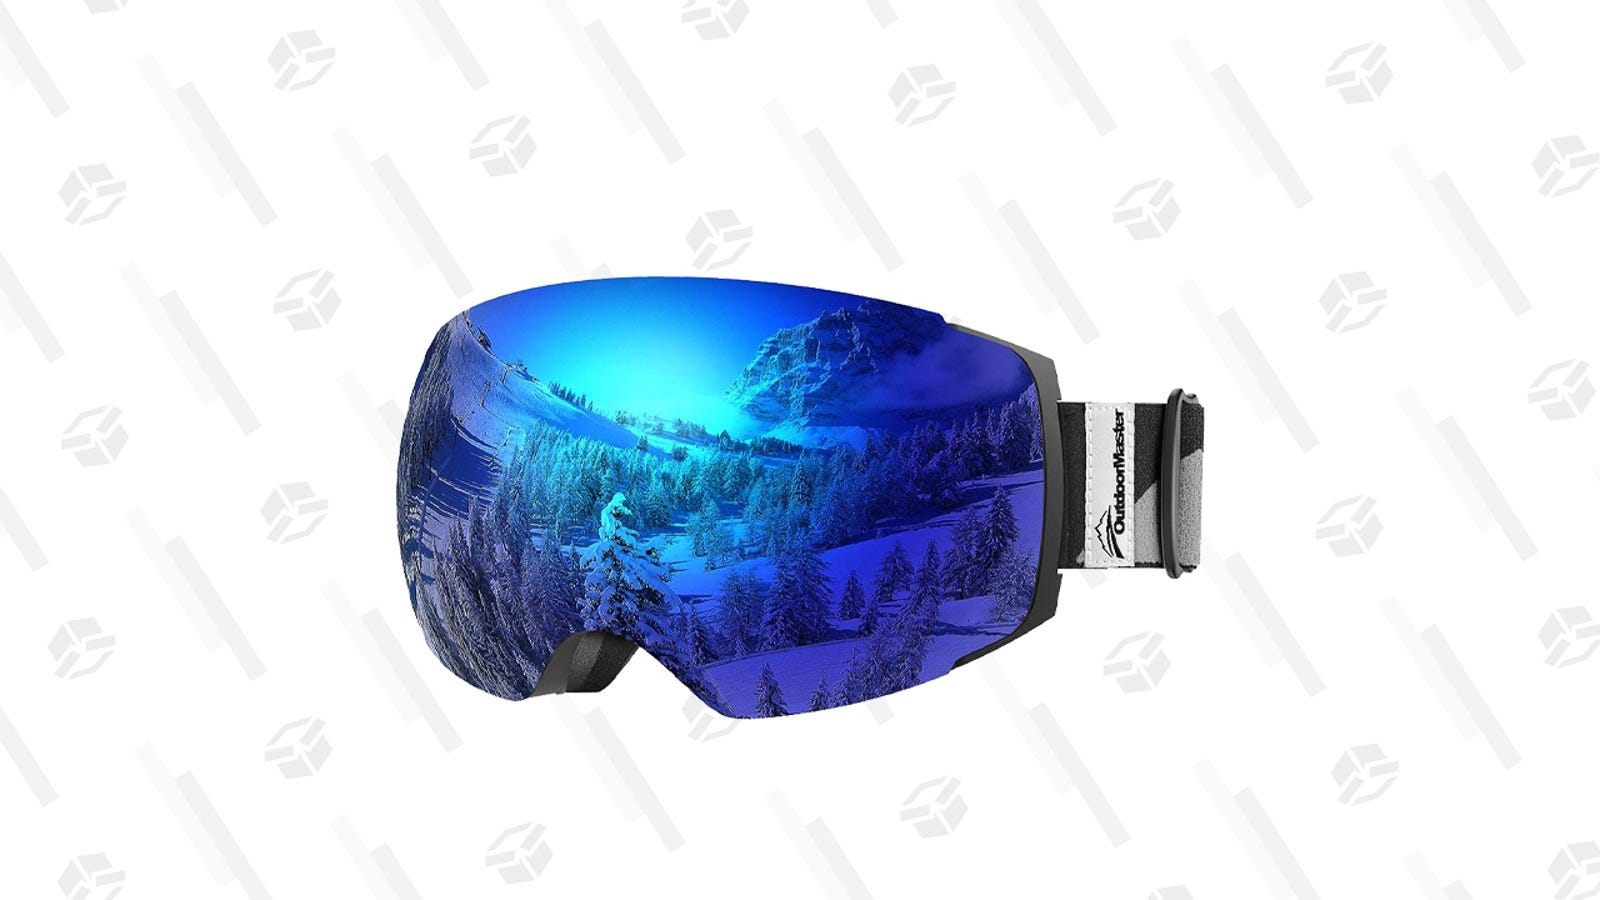 e25f123b0e1 Save on a Few OutdoorMaster Ski Goggles with This Amazon Gold Box